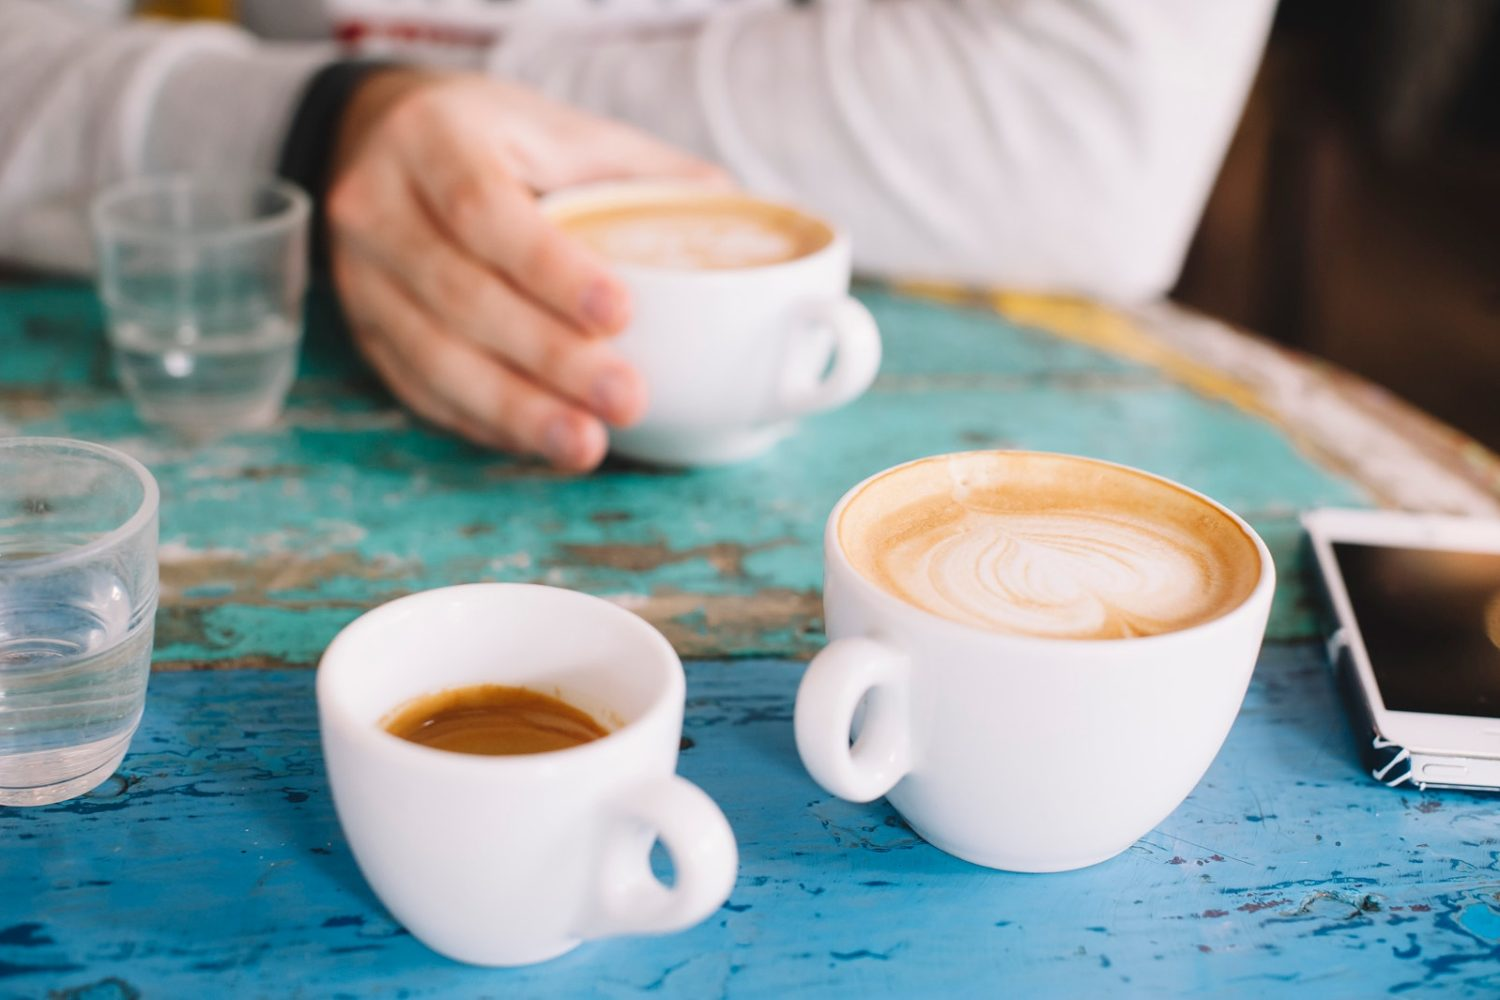 Coffee Talk: Understanding the Visual Preferences of Your Customers